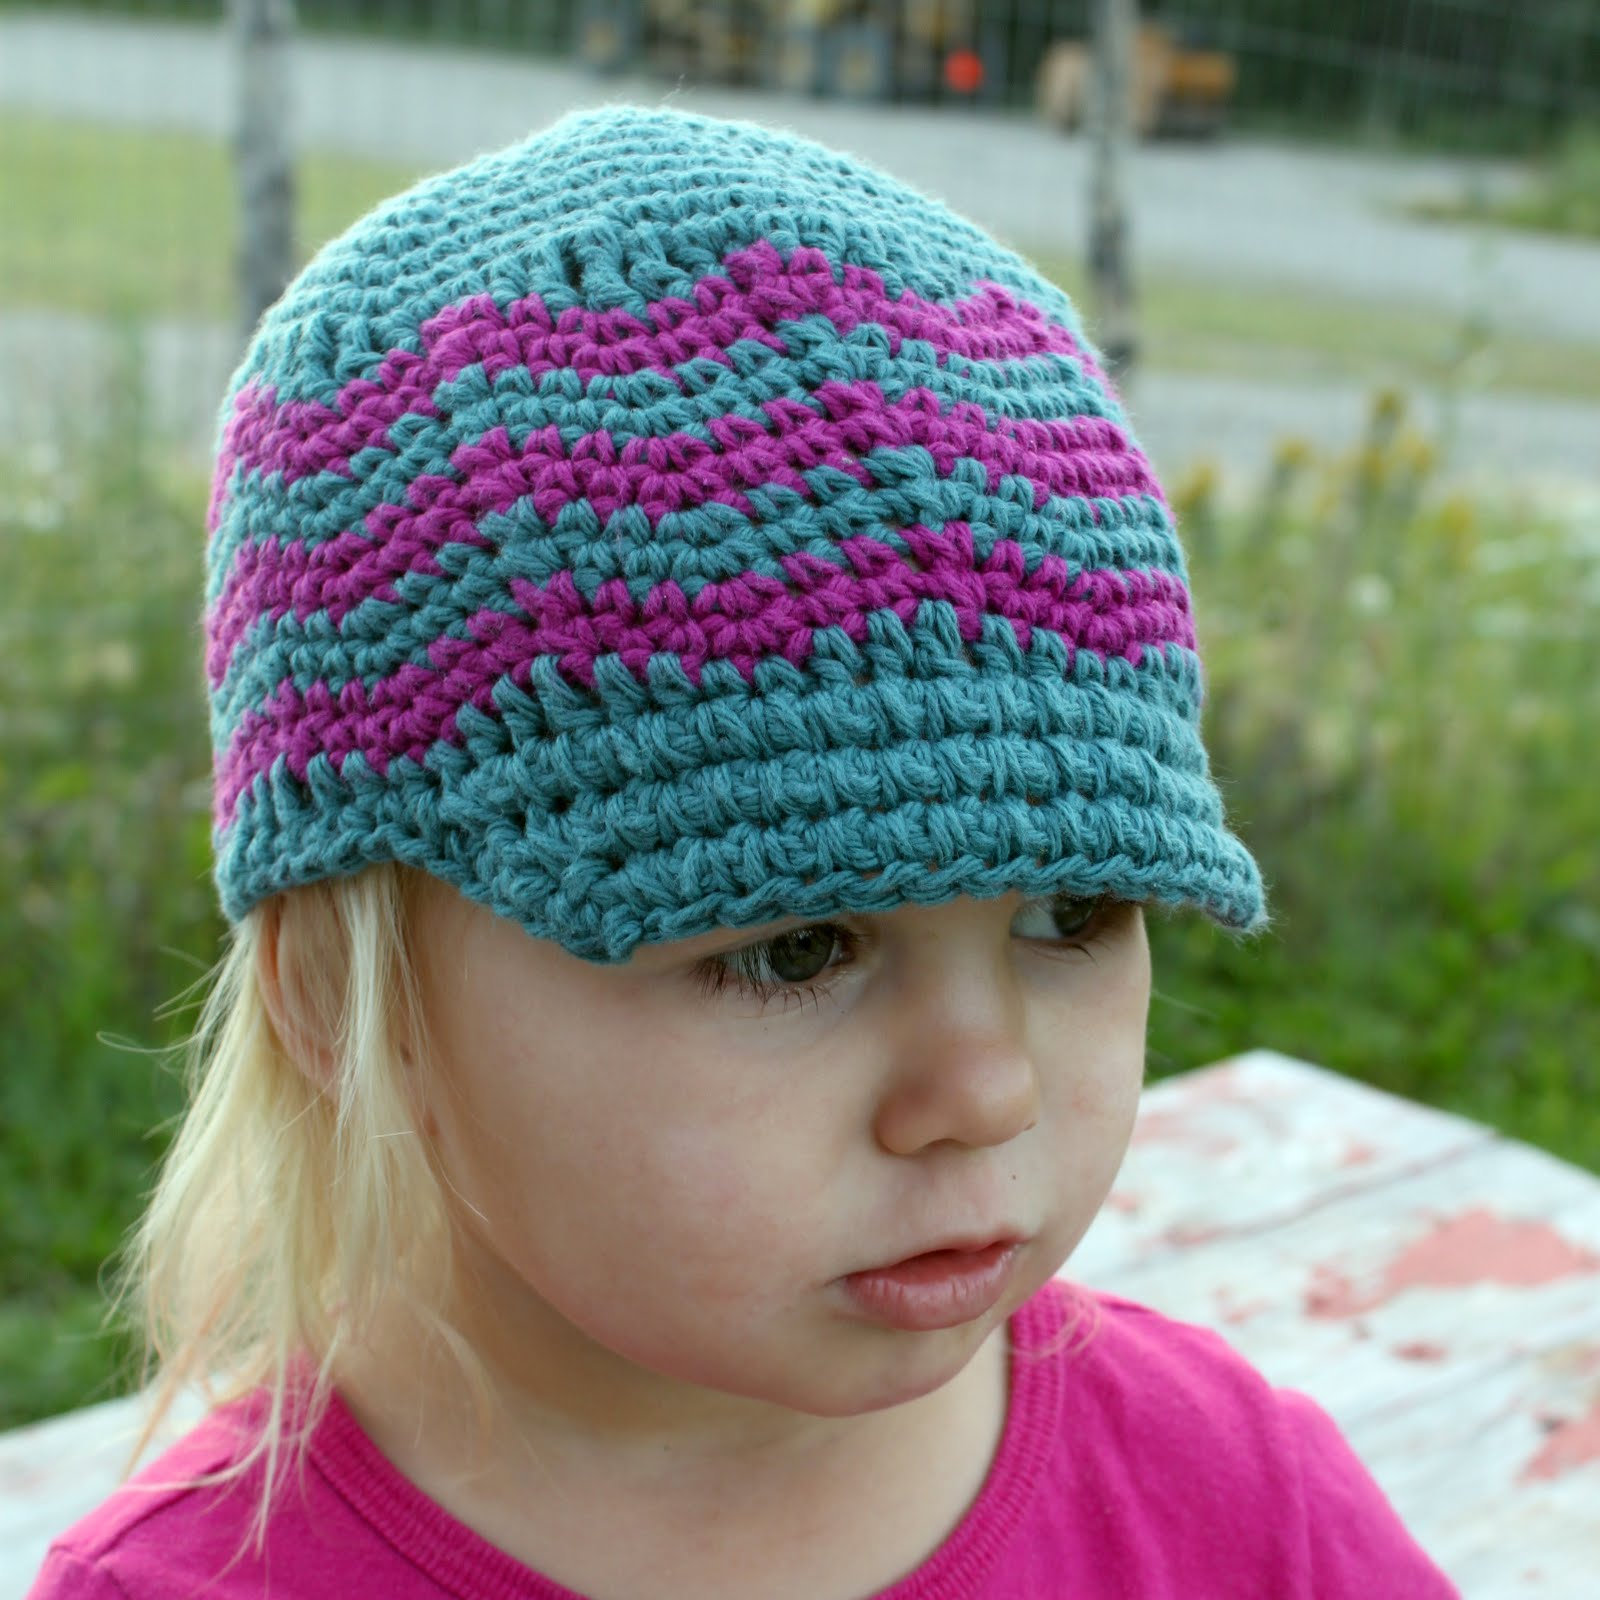 DewDrop's Designs: Hat with brim